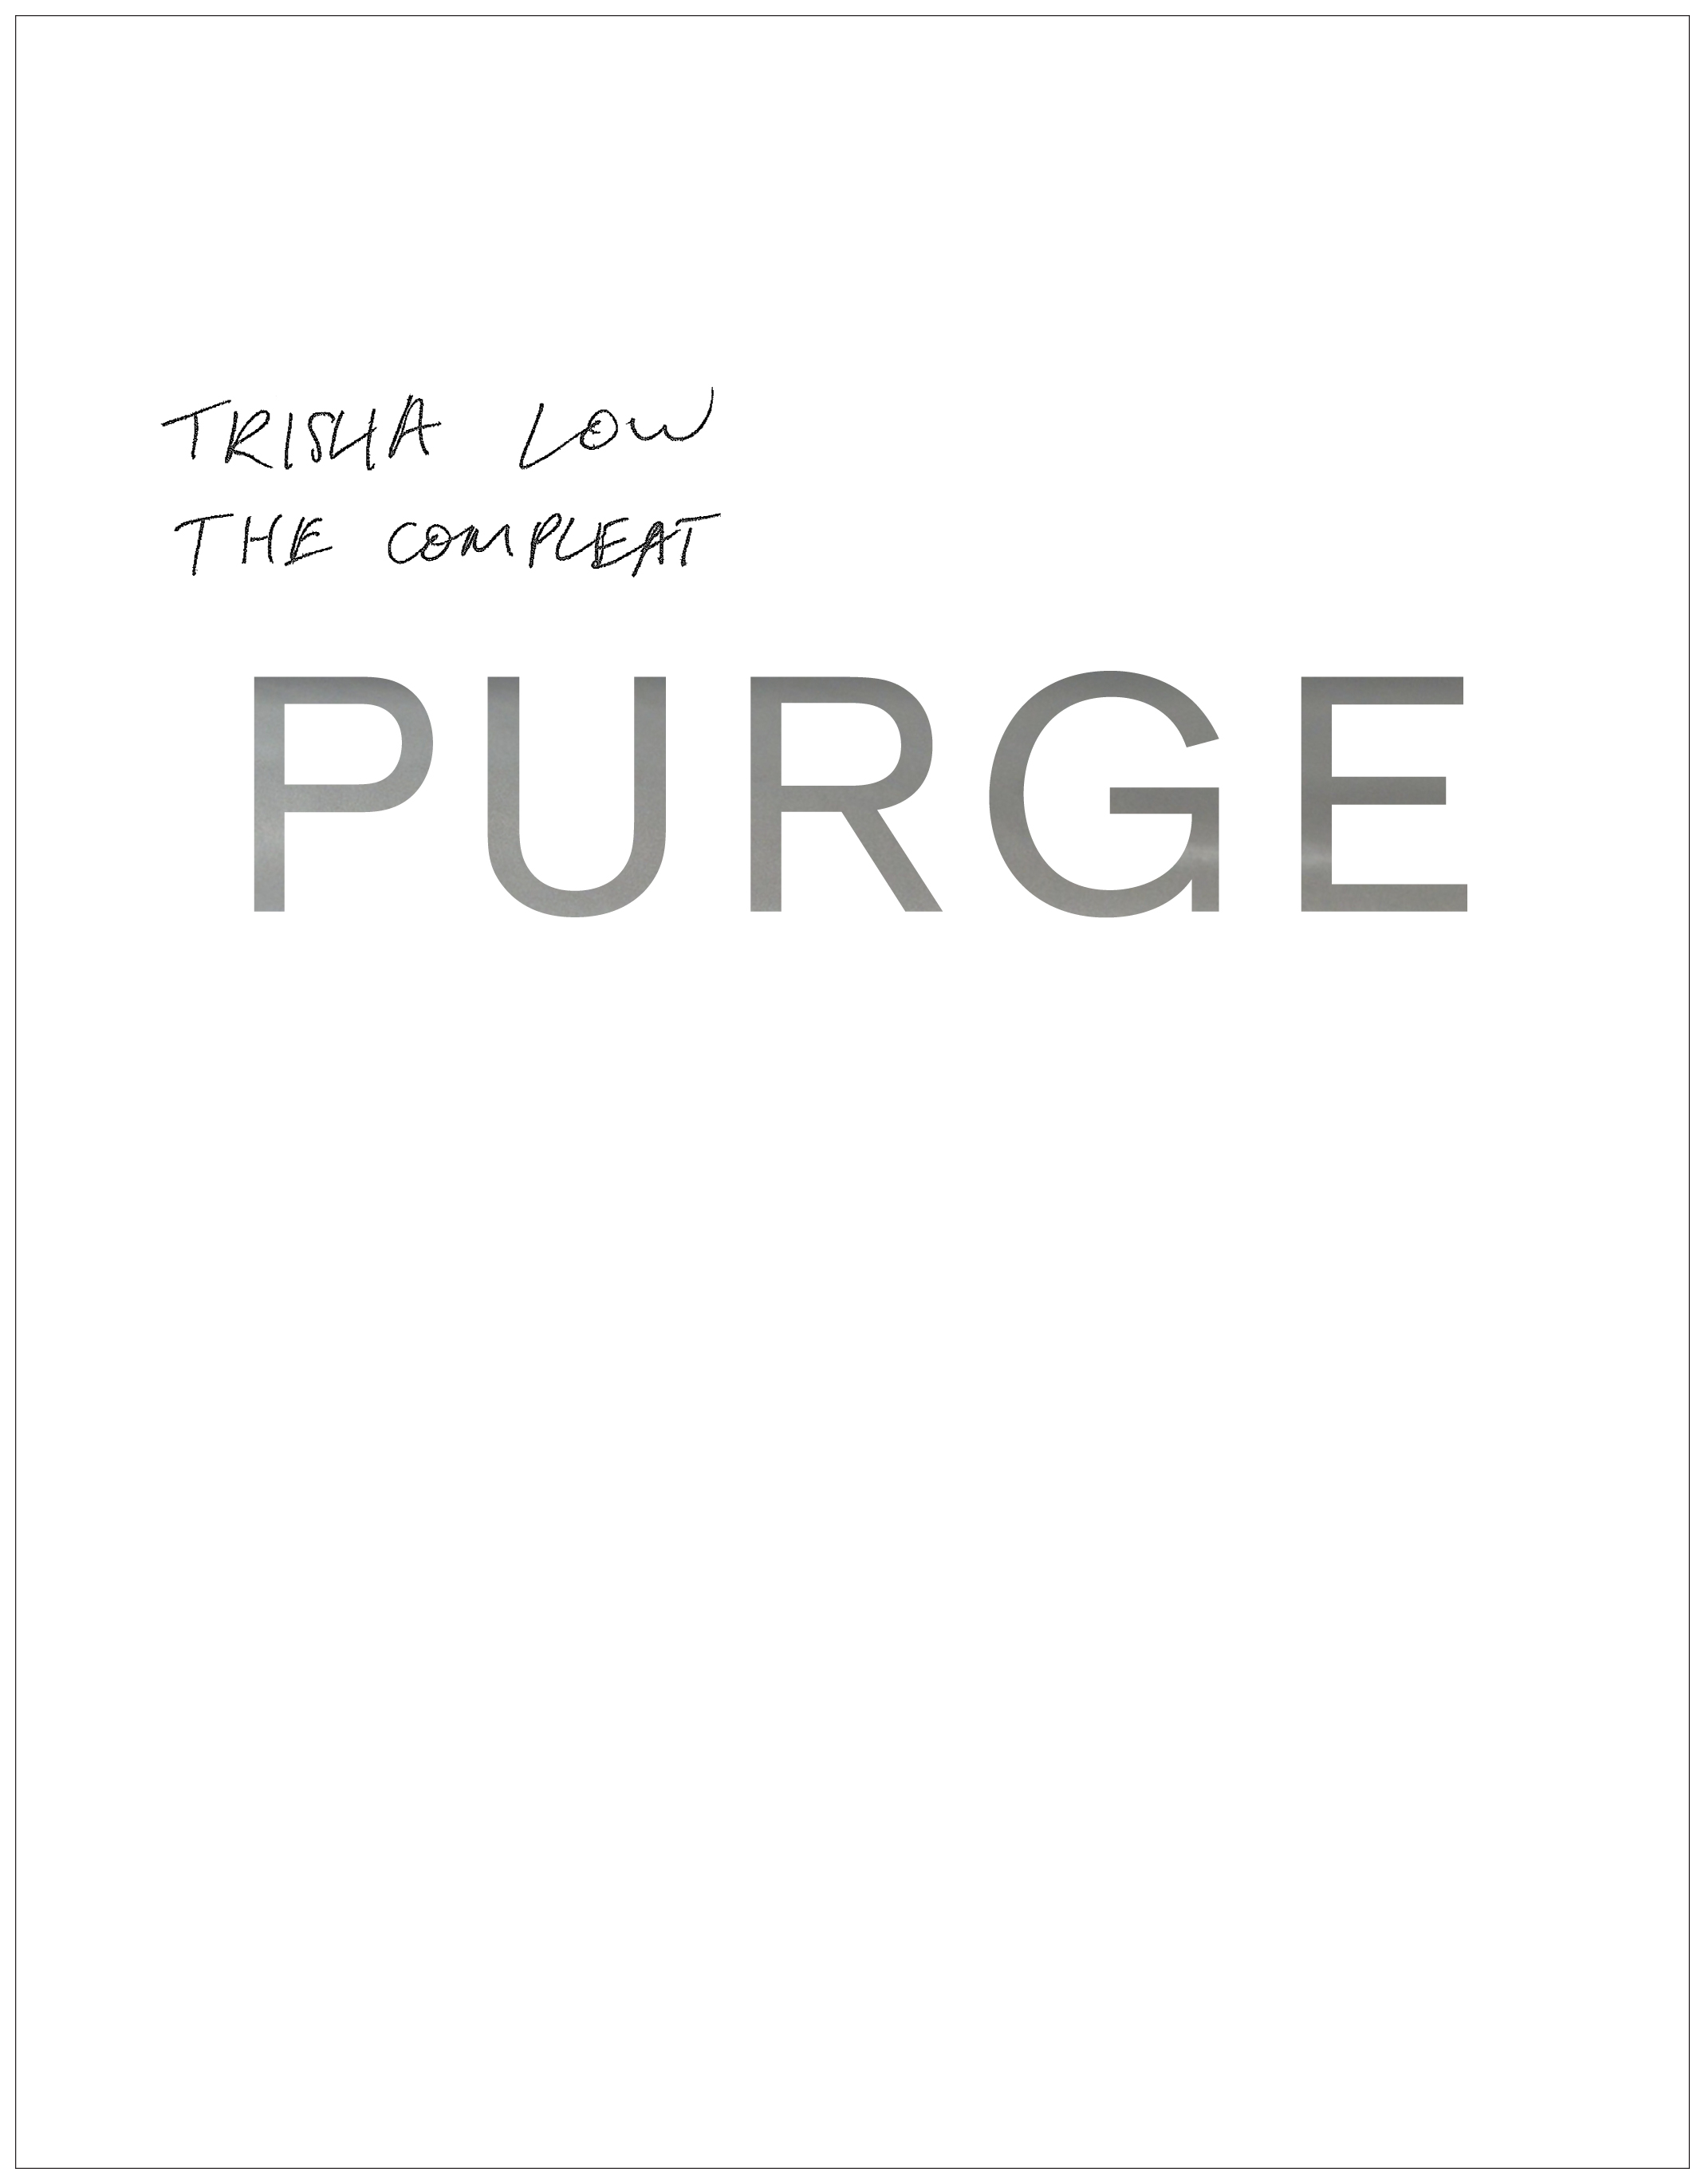 The Compleat Purge, Trisha Low